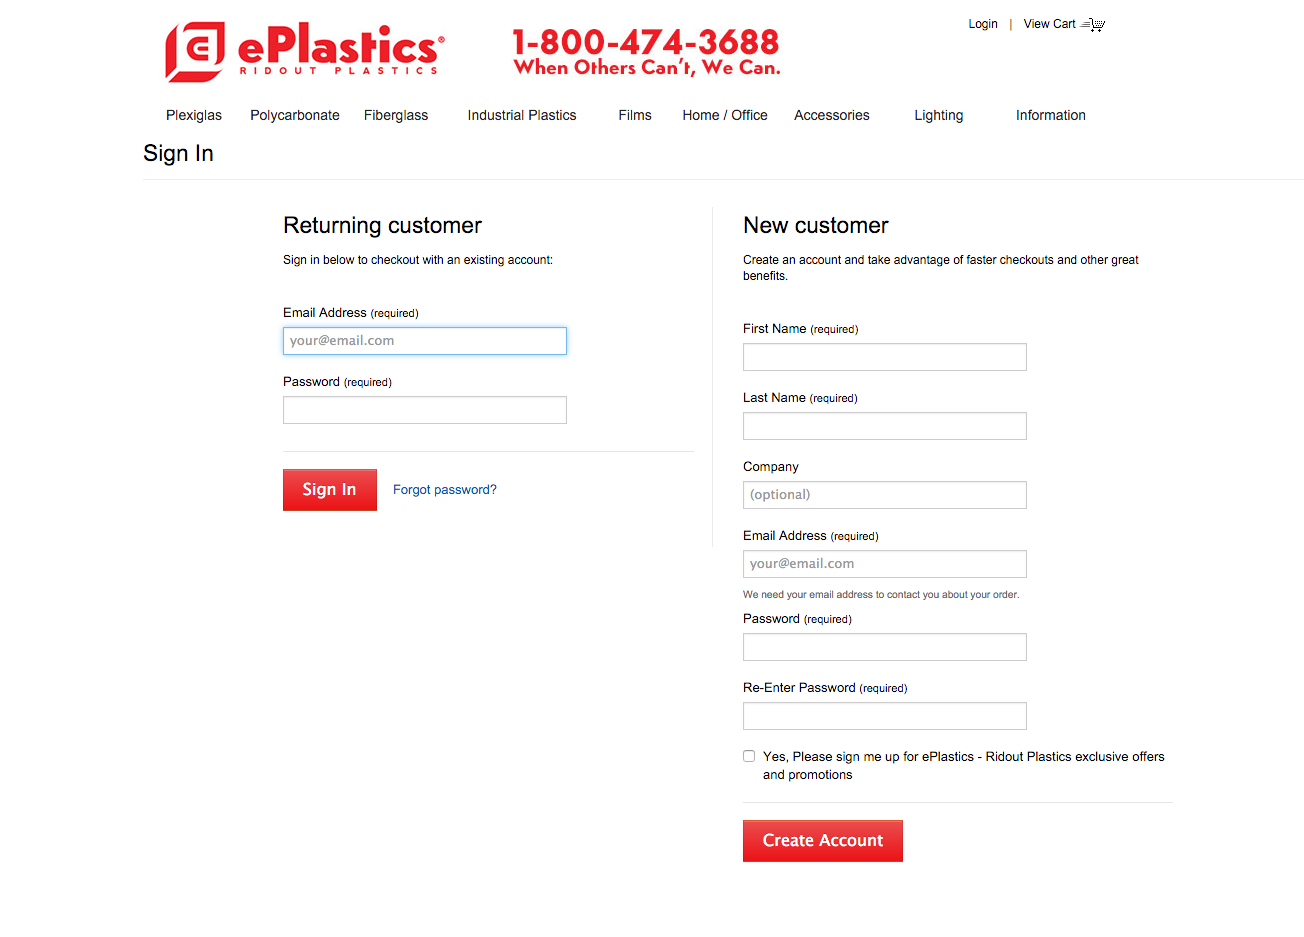 ePlastics® Order Information Instructions